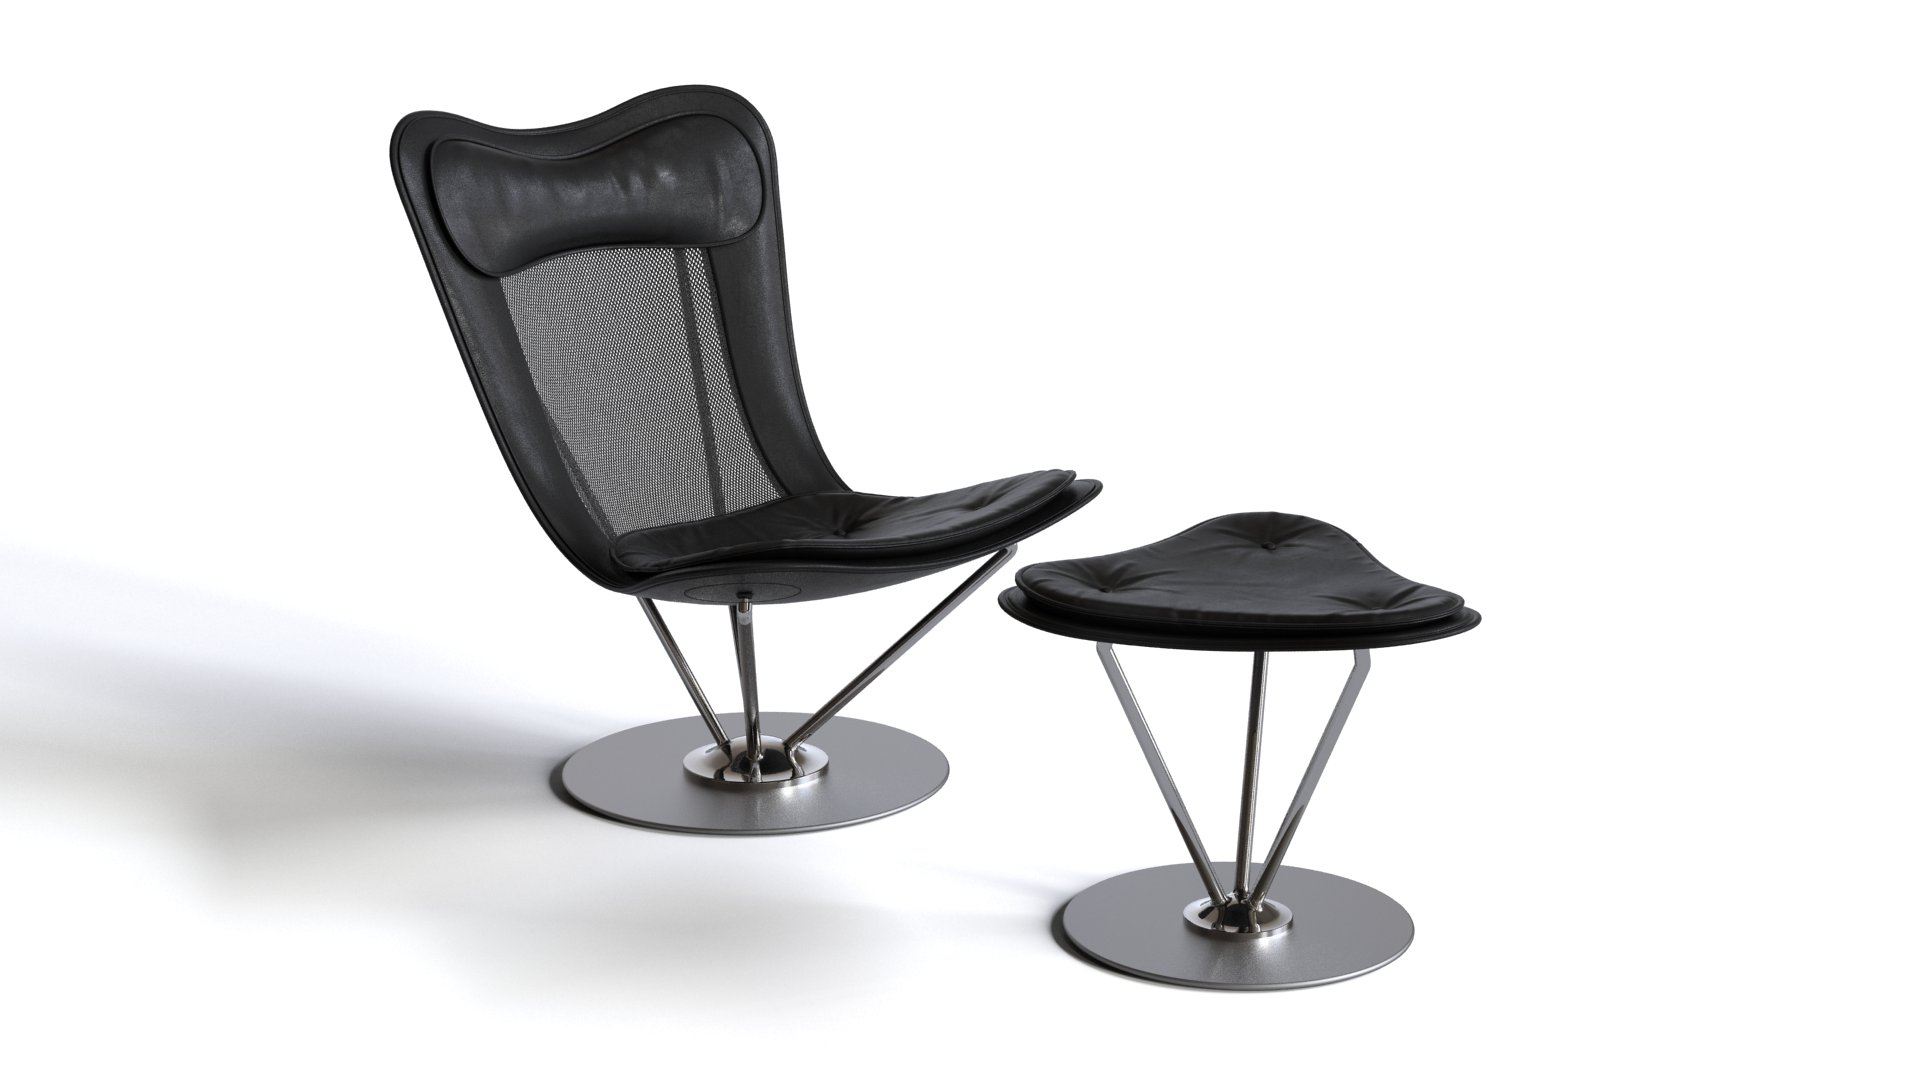 Volo Chair Photo Gallery